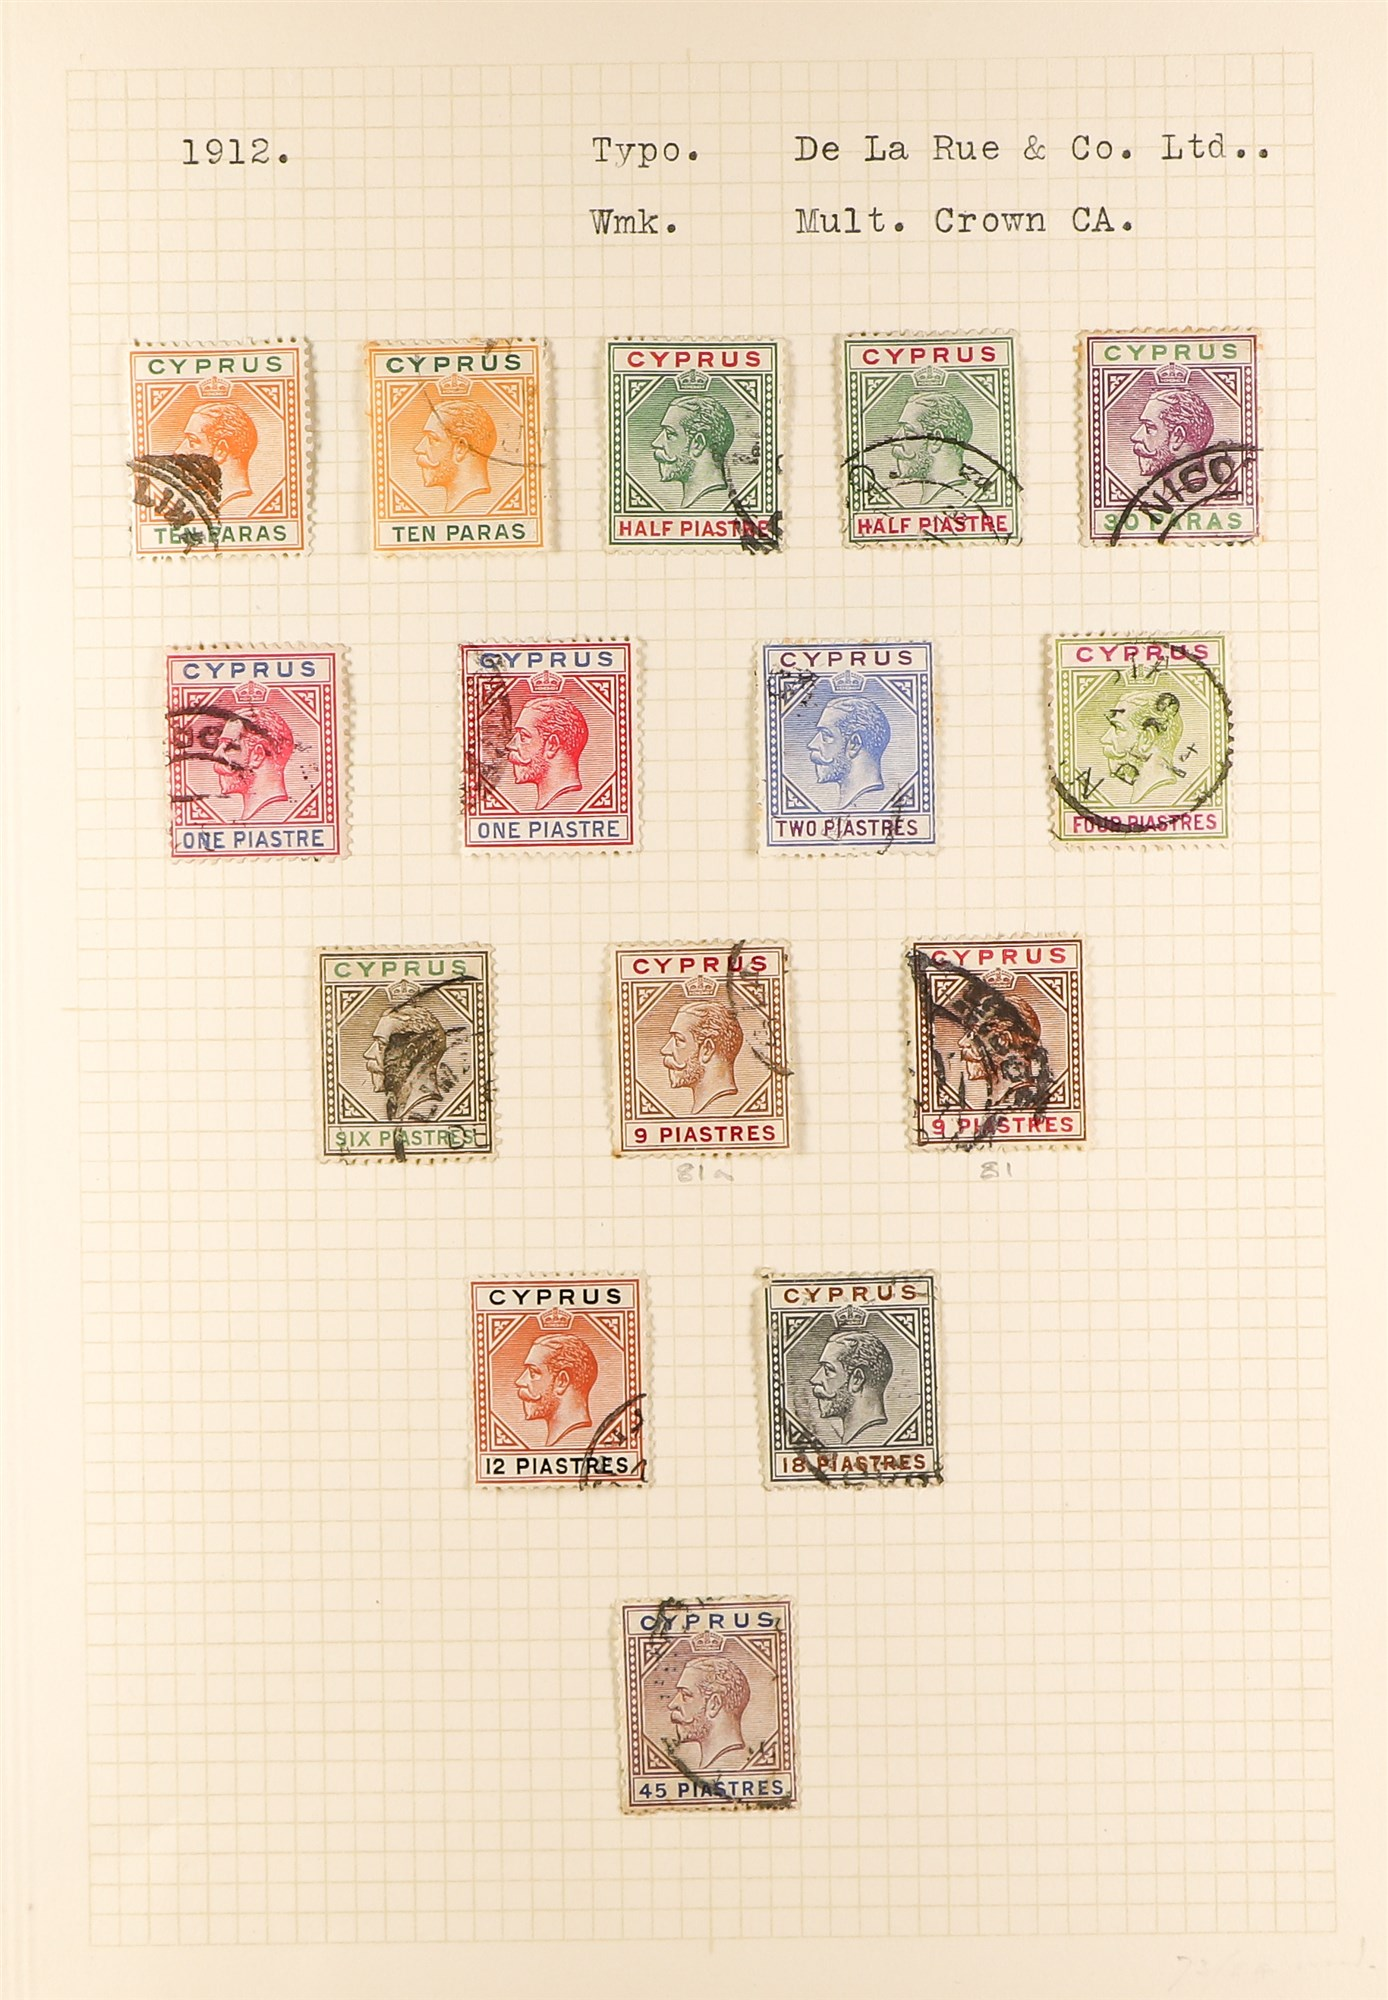 CYPRUS 1880-1935 old used collection incl. 1880 GB overprints including 2½d & ½d plate 15 used, - Image 4 of 7